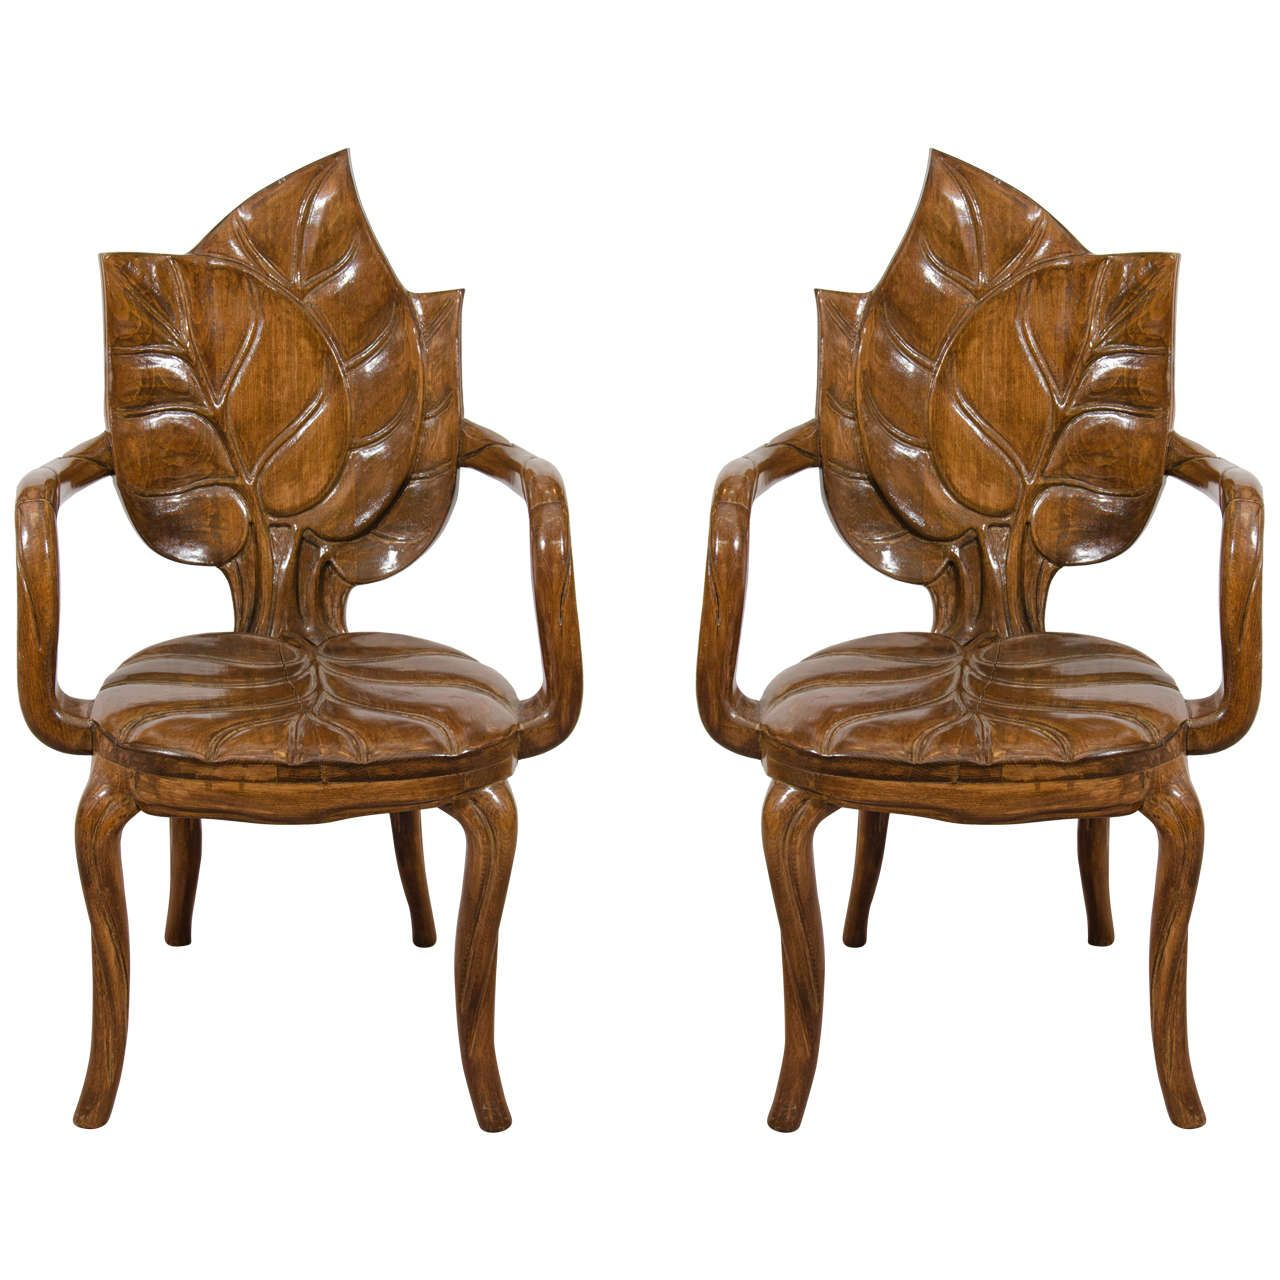 Art Nouveau Chairs At 1stdibs Art Deco And Art Nouveau